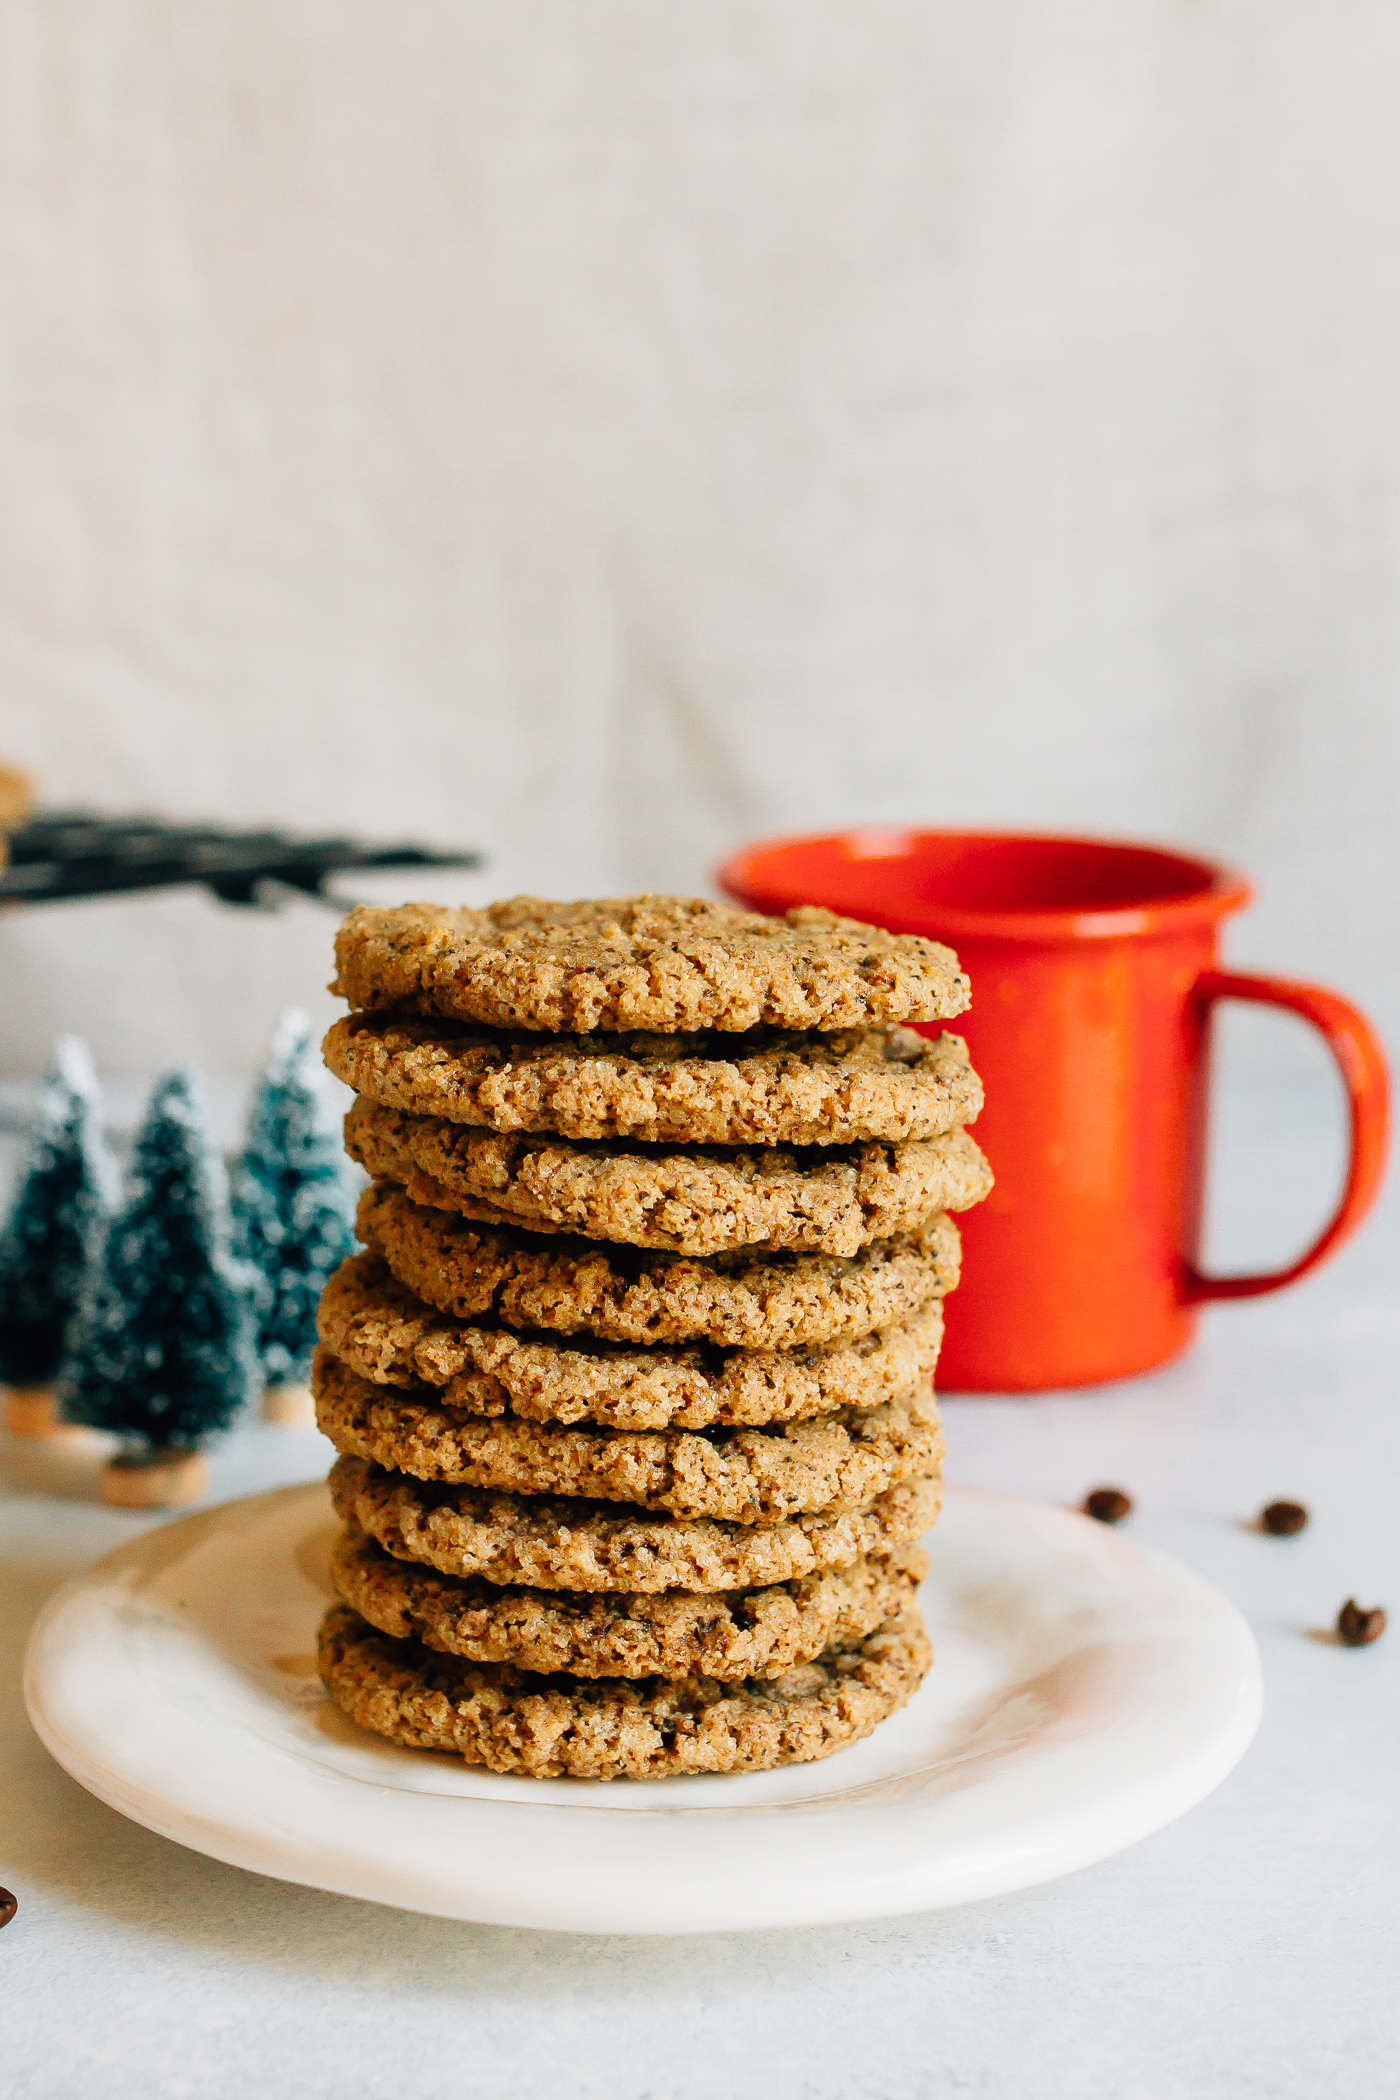 Paleo Christmas Cookie Recipes for a healthier holiday dessert! #Christmas #Paleo #cookies #glutenfree